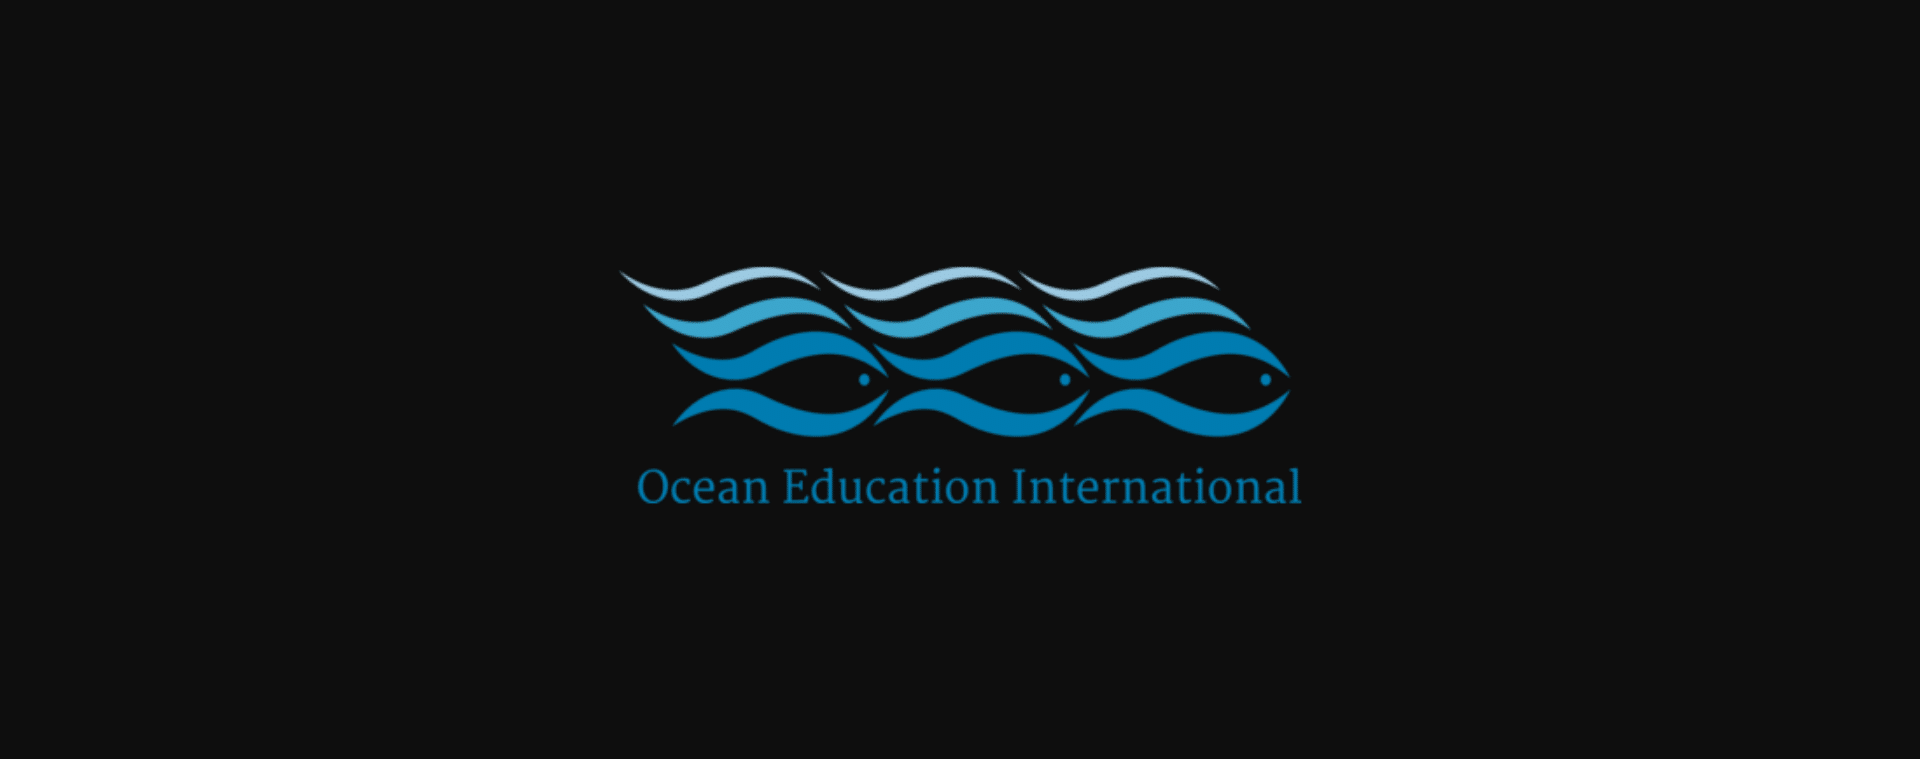 Ocean Education International Aims To Redefine The Tourism Experience